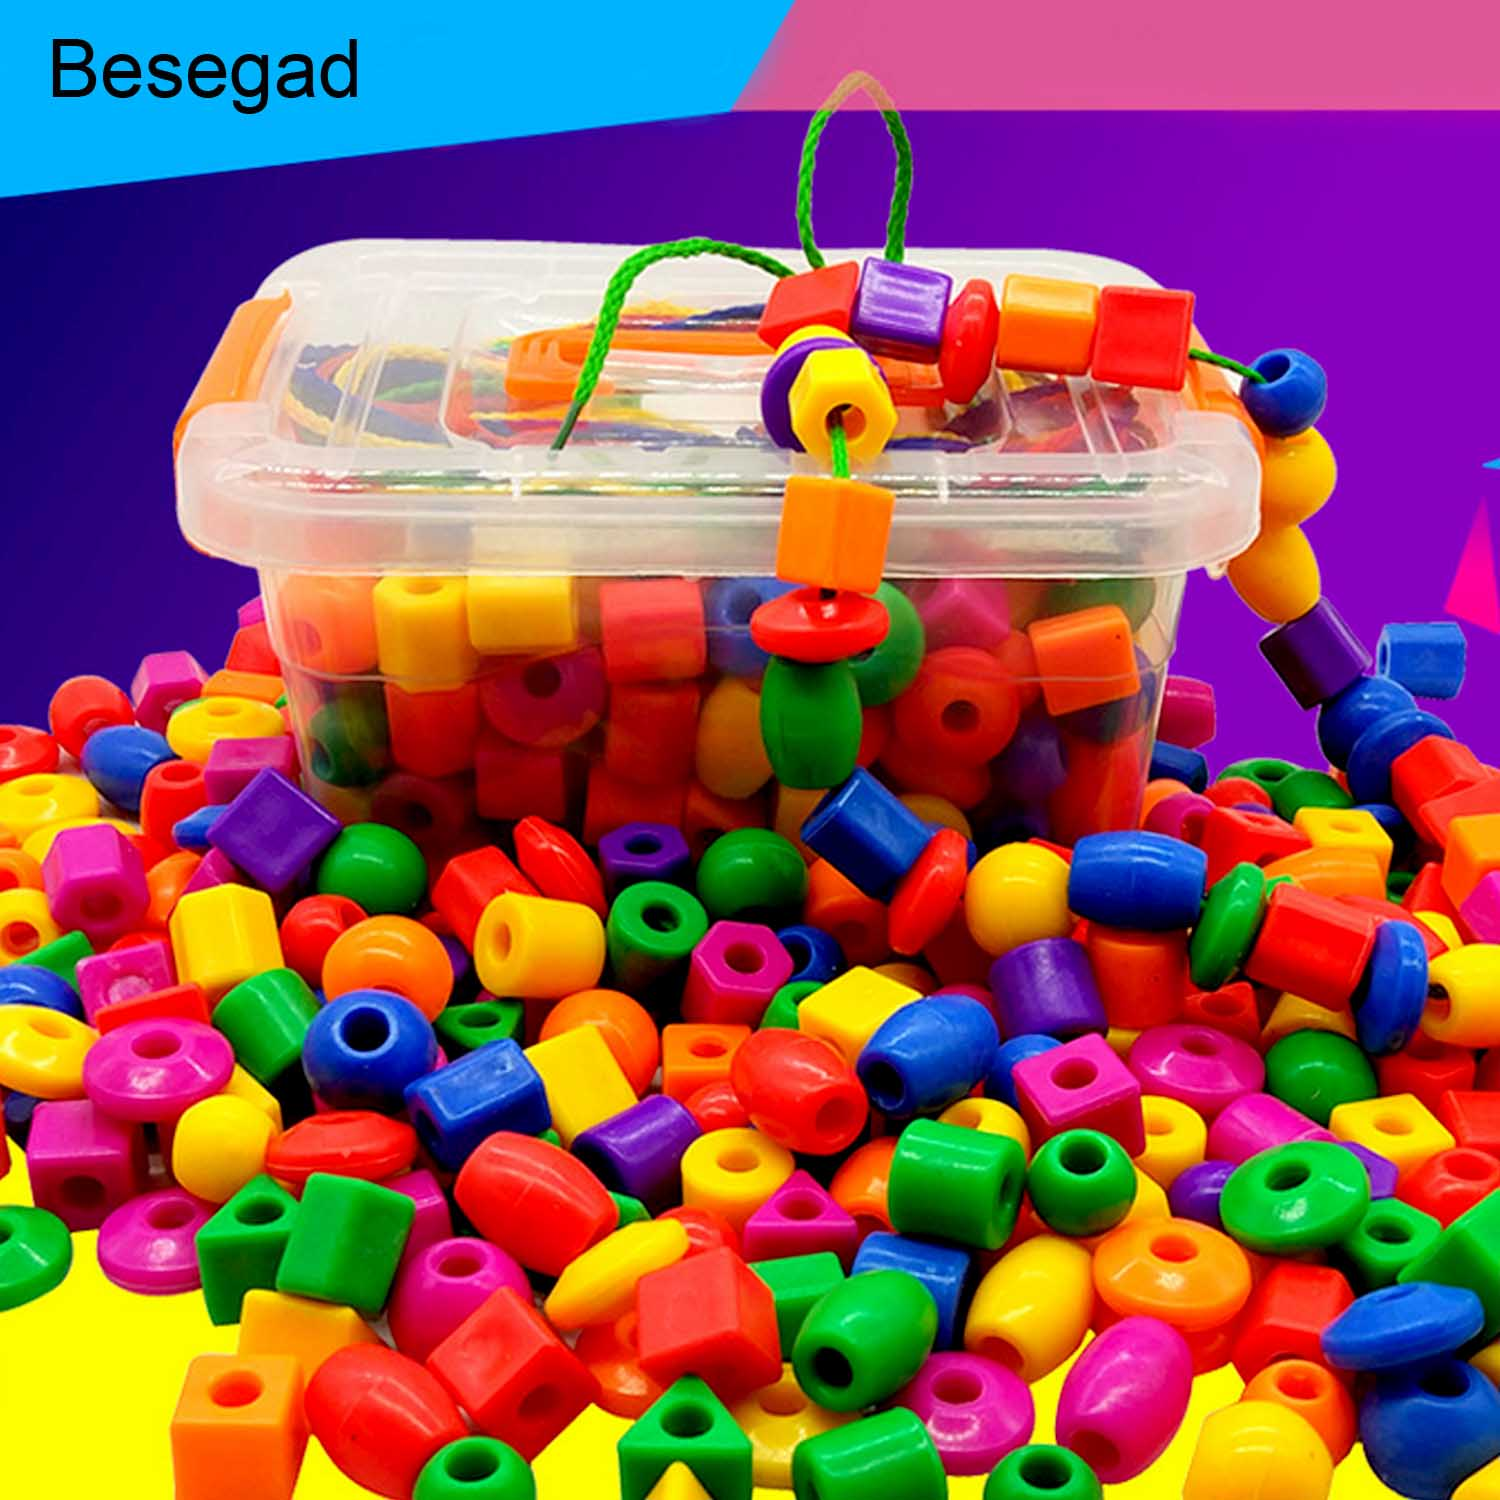 Besegad 1 Set Colorful Wooden String Lacing Bead With 3 Laces For Children Jewelry Making Creative DIY Beads Toy Educational Toy